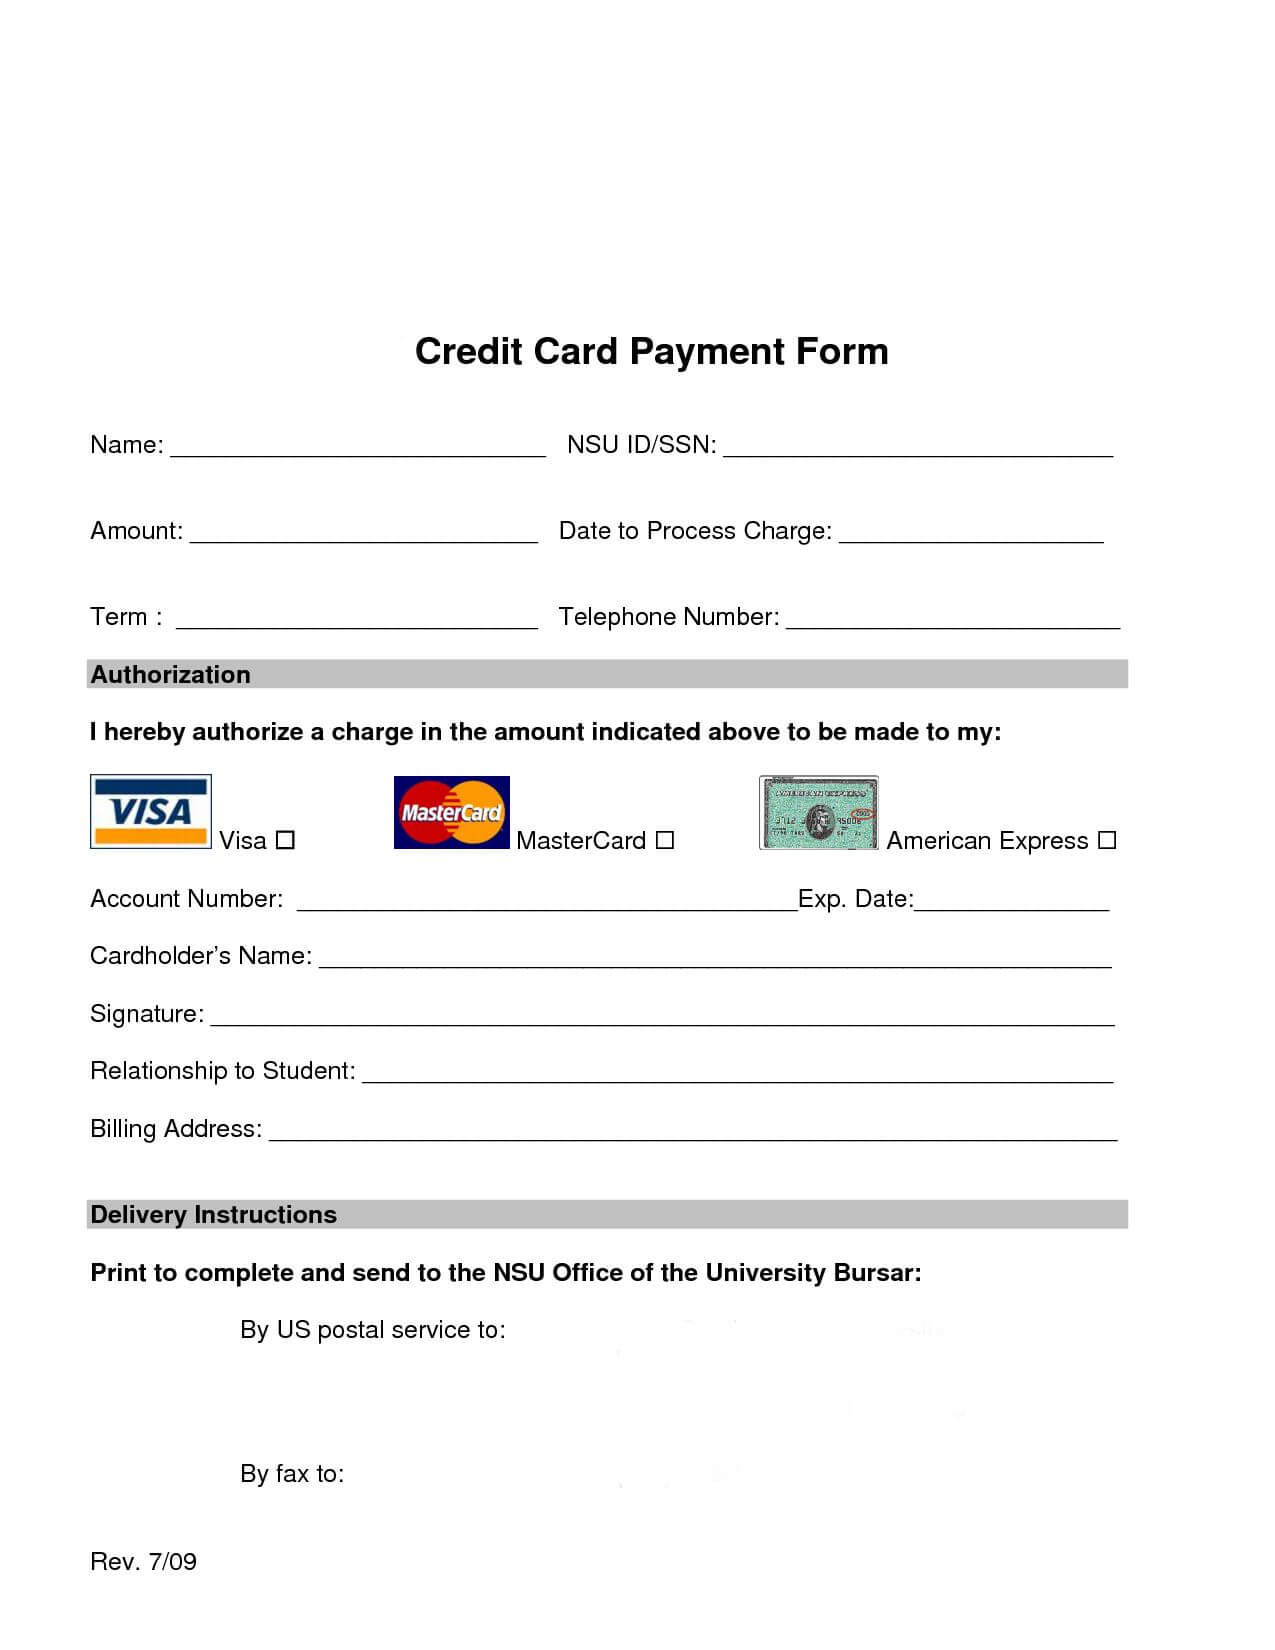 Credit Card Processing Form | Words, Cards, Web Design throughout Order Form With Credit Card Template